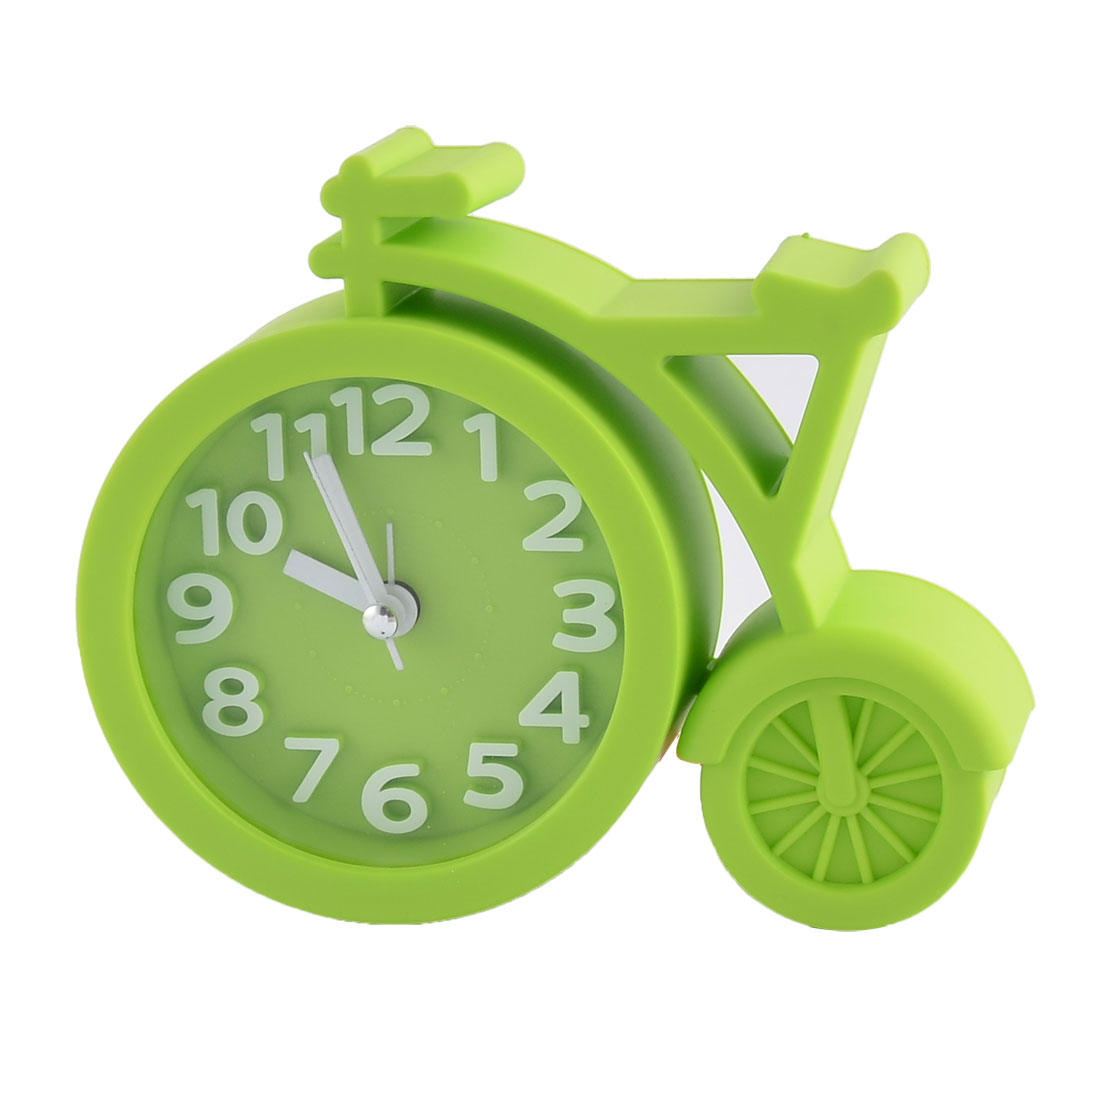 Household Office Desktop Plastic Bike Shaped Silent Battery Powered Arabic Number Alarm Clock Green